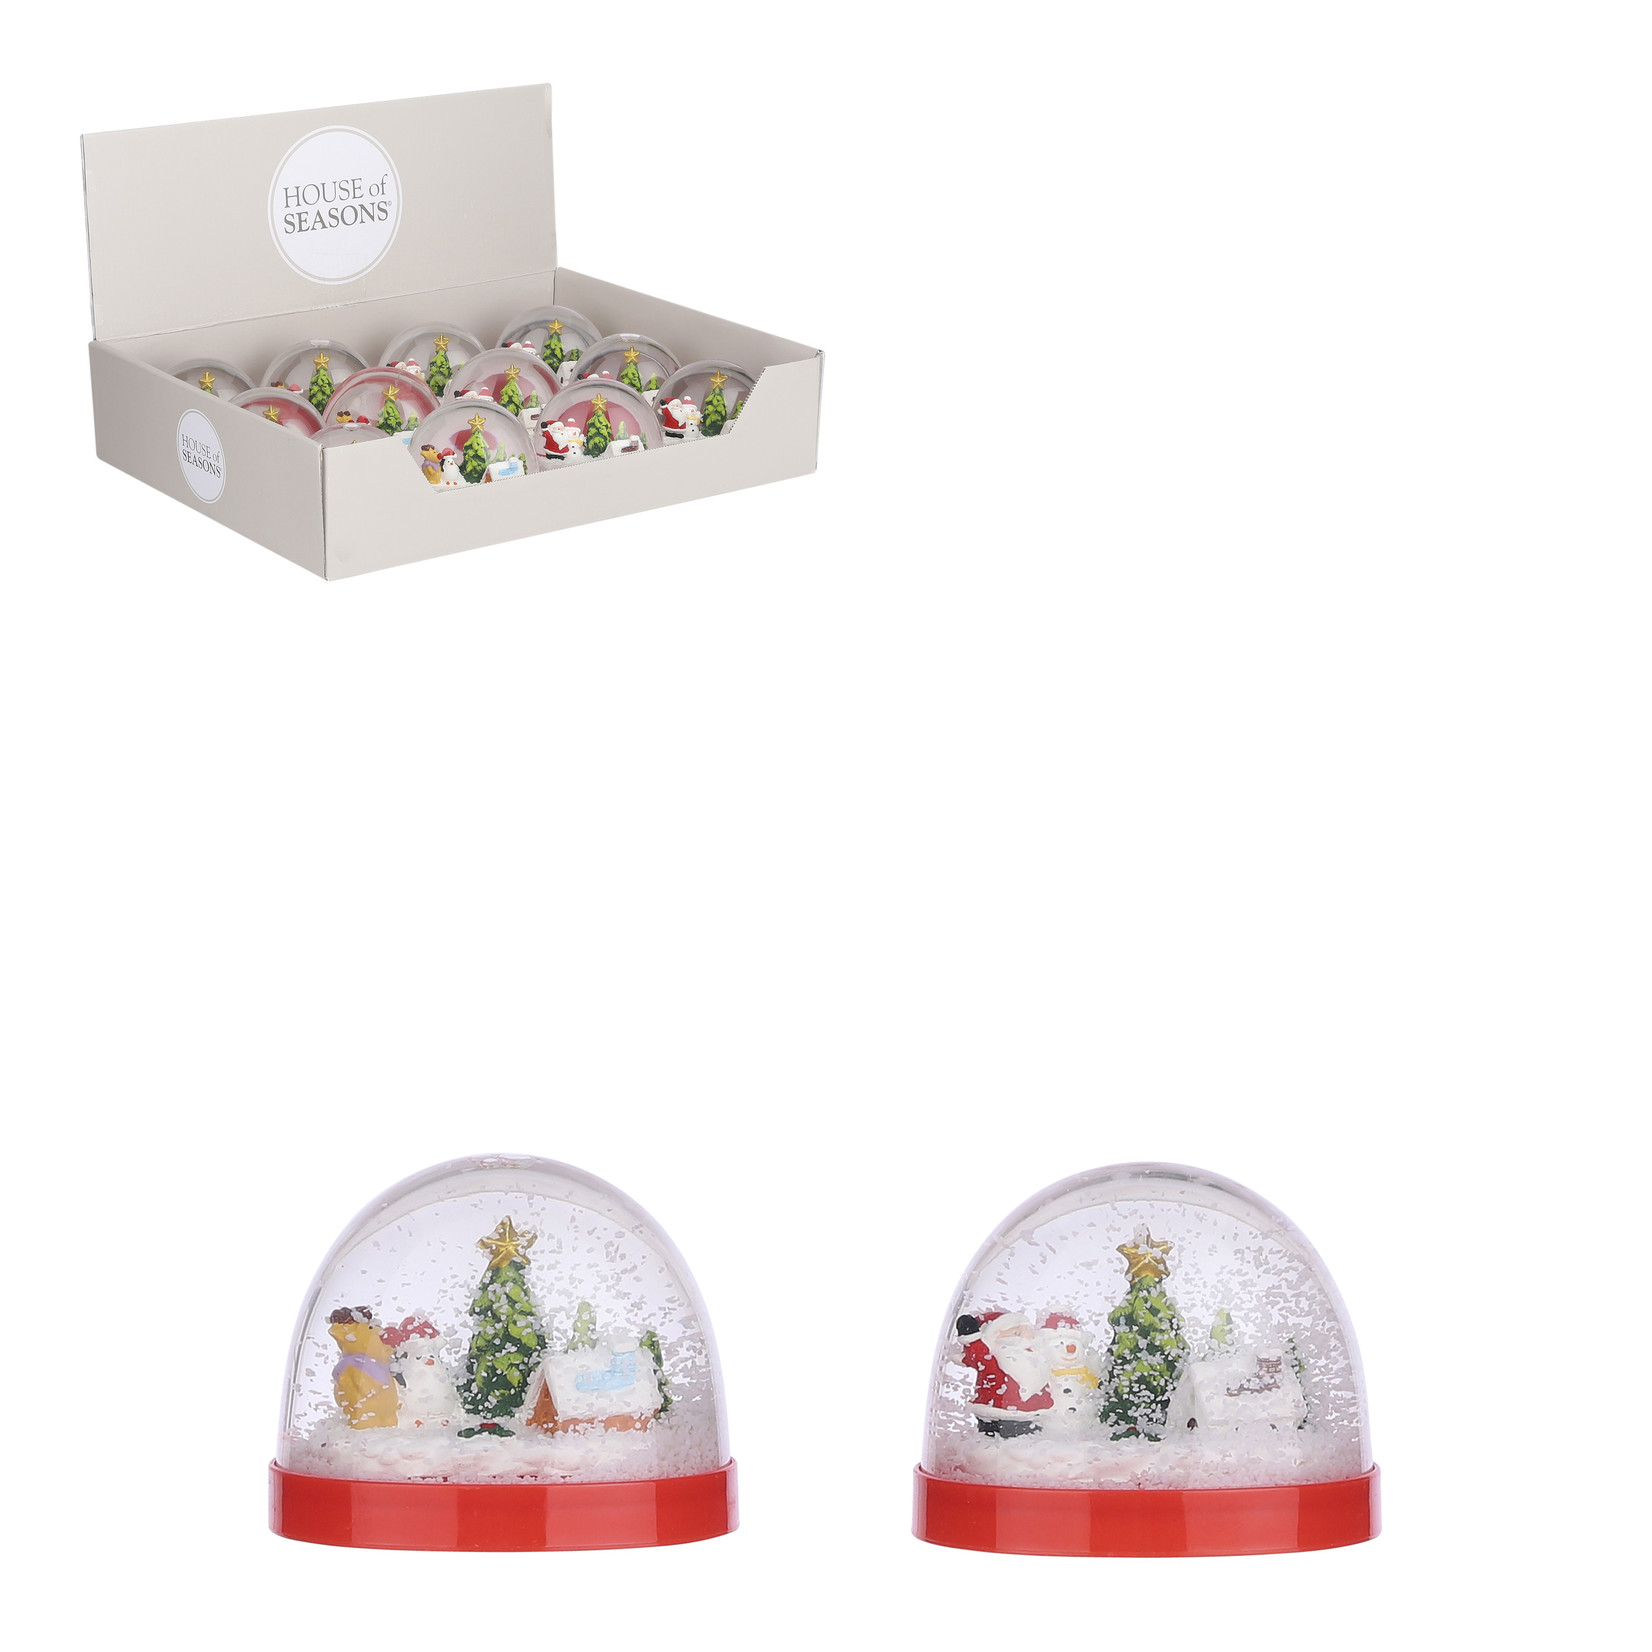 House of Seasons Water ball winter scene red 2 assorted